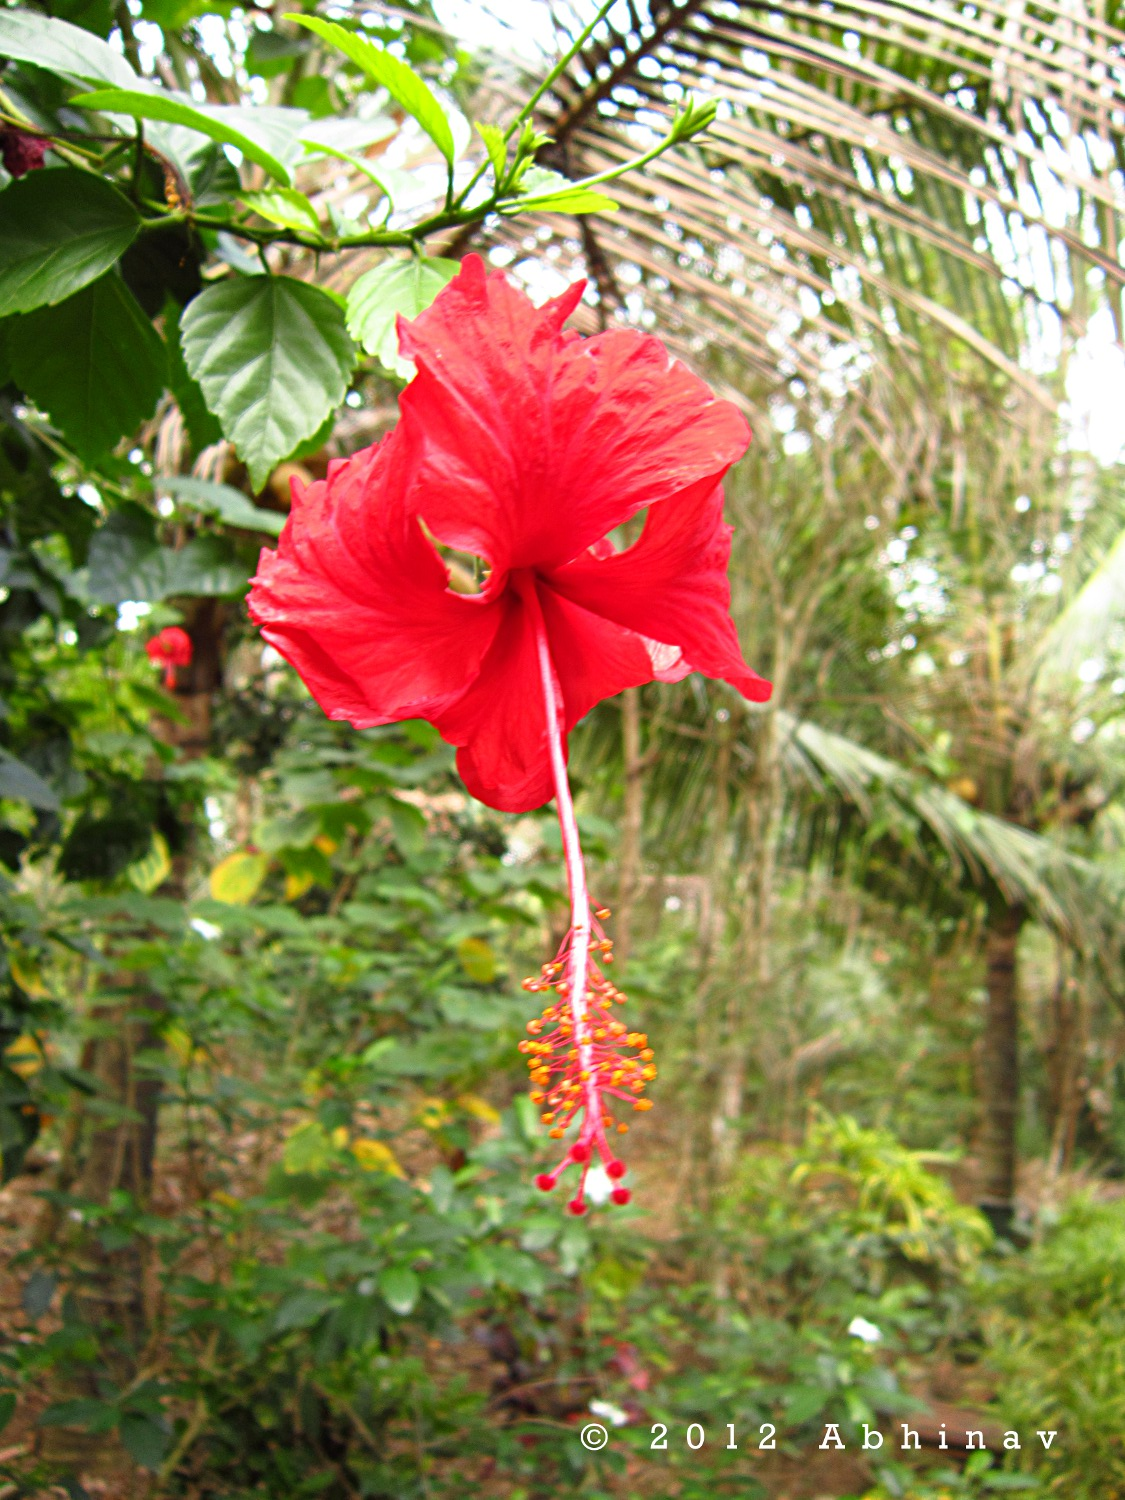 Hibiscus flowers rhythm of nature it is the most common hibiscus variety i think scientific name is hibiscus rosa sinesis the flowers with five petals are in pure red color izmirmasajfo Image collections